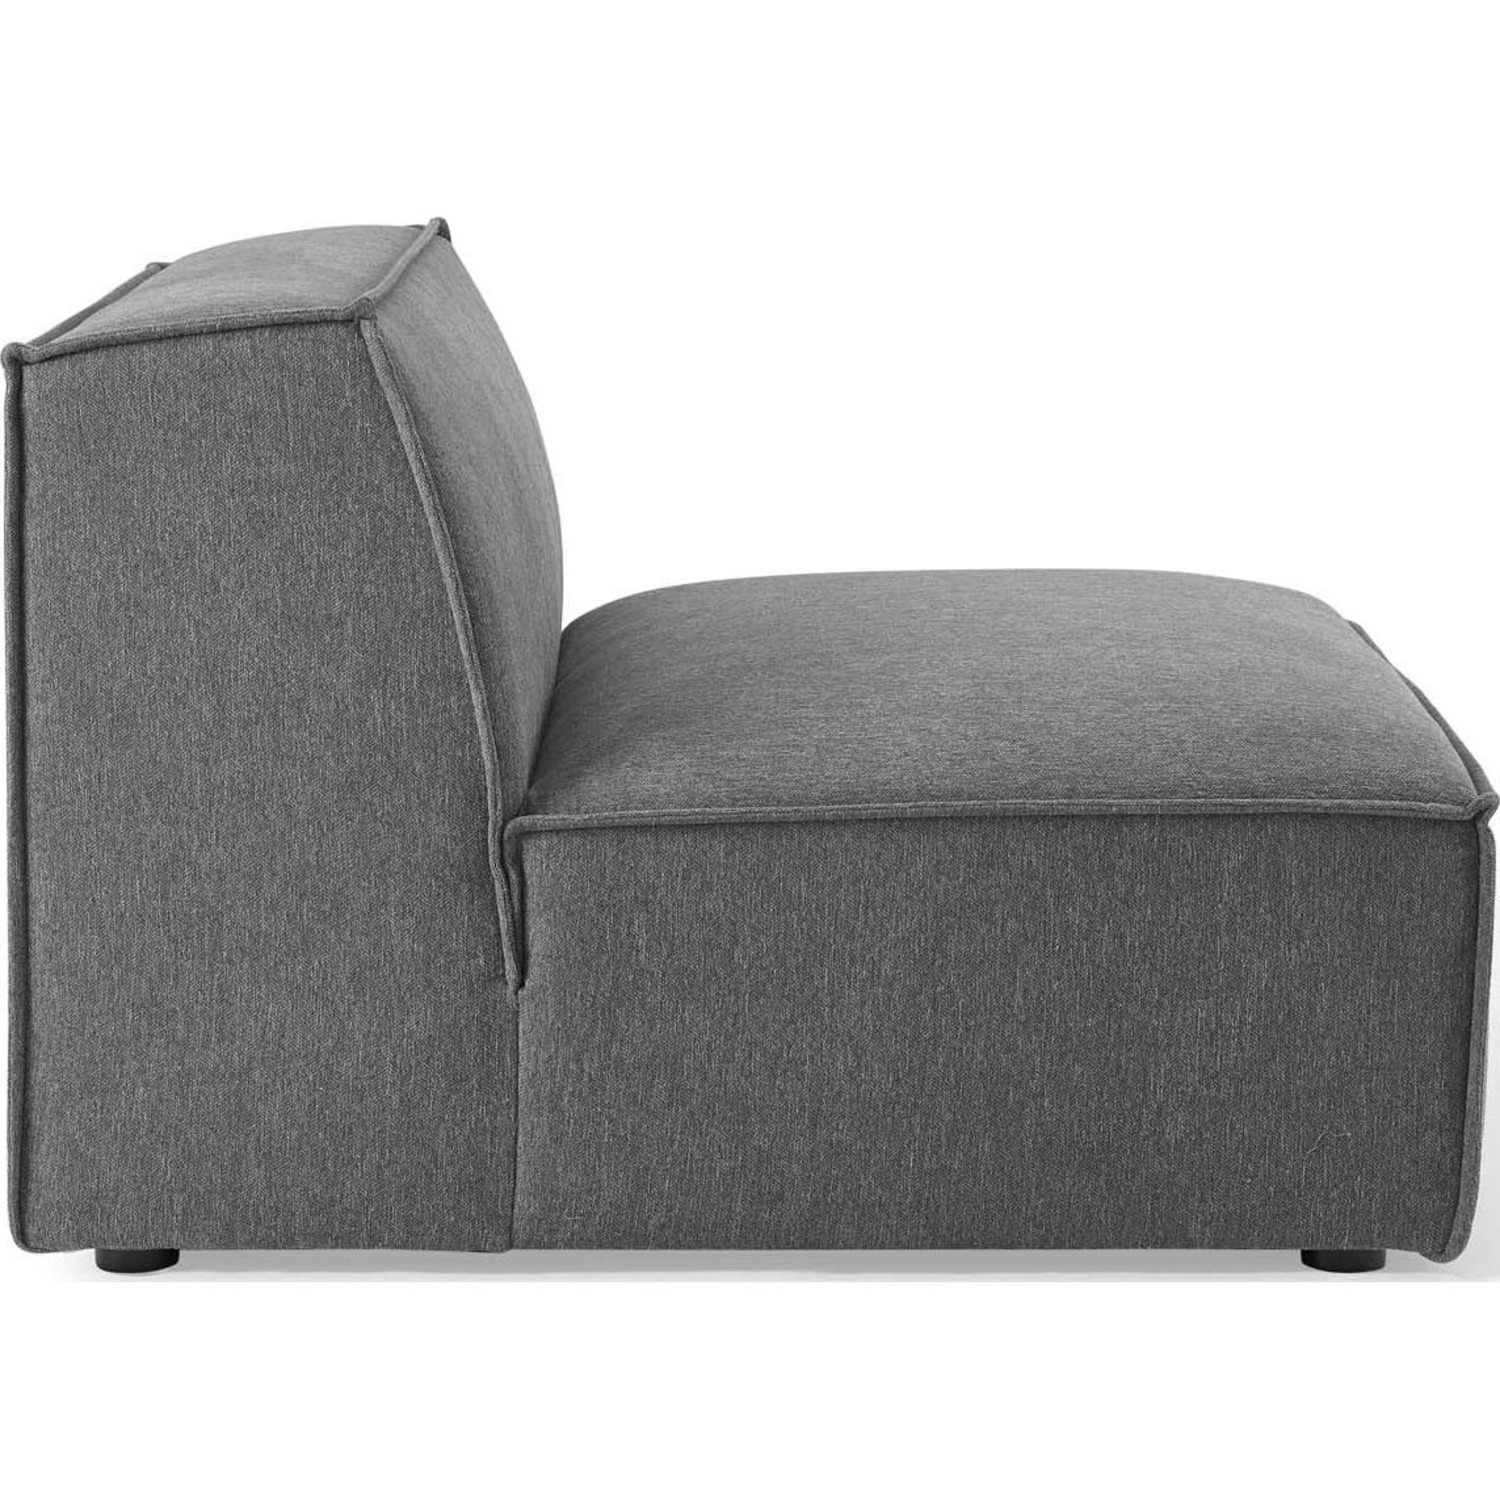 5-Piece Sectional Sofa In Charcoal Fabric - image-7